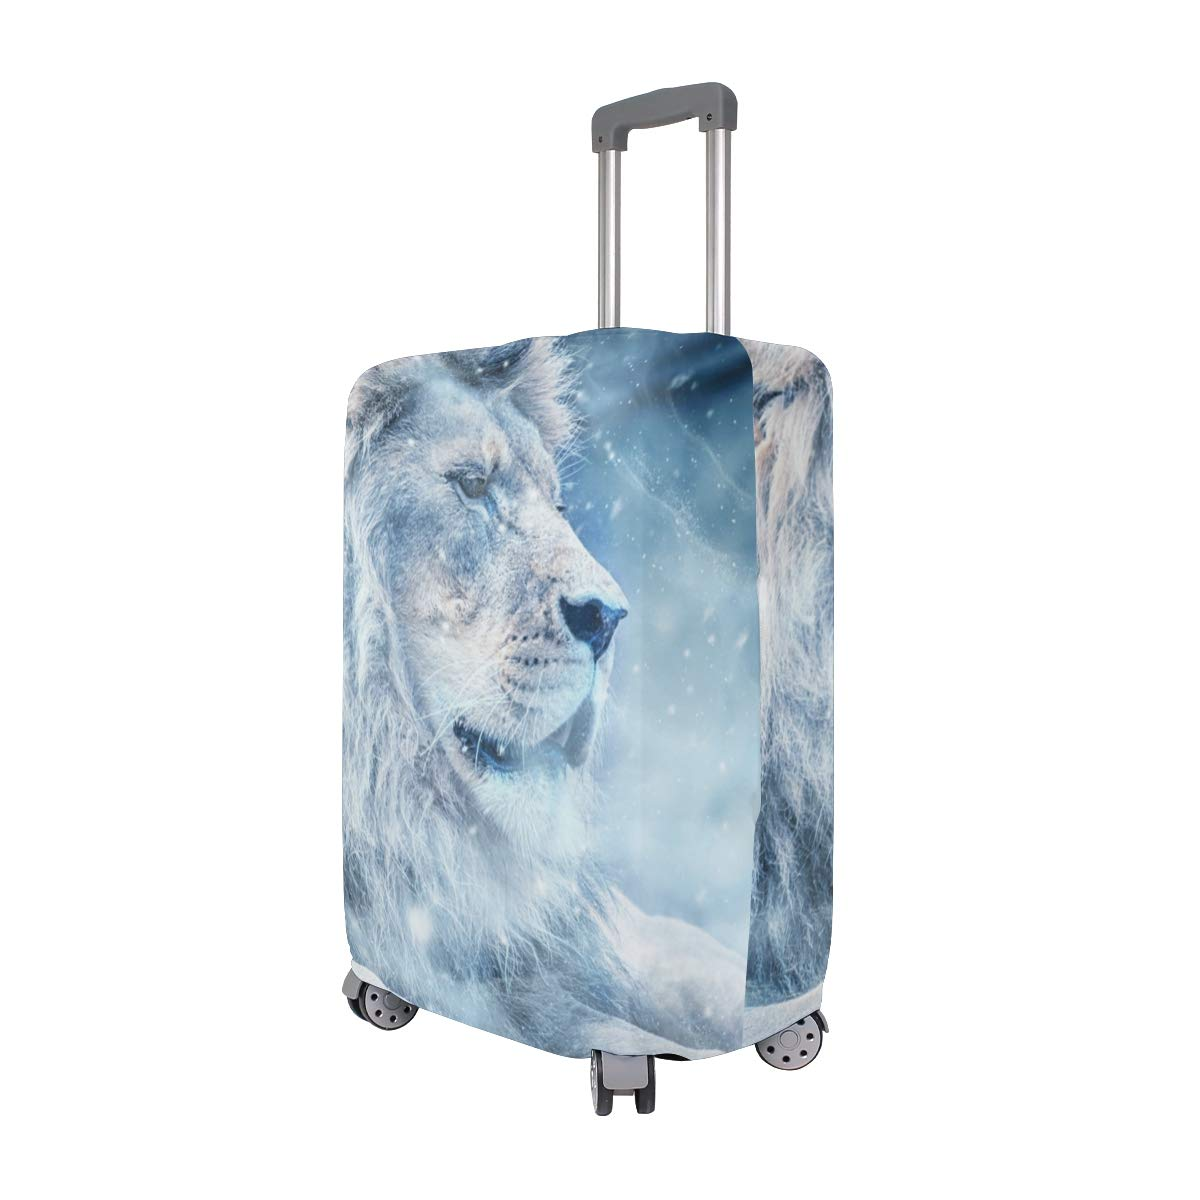 Baggage Covers Lion Lying Winter Cold Snow Ice White Washable Protective Case